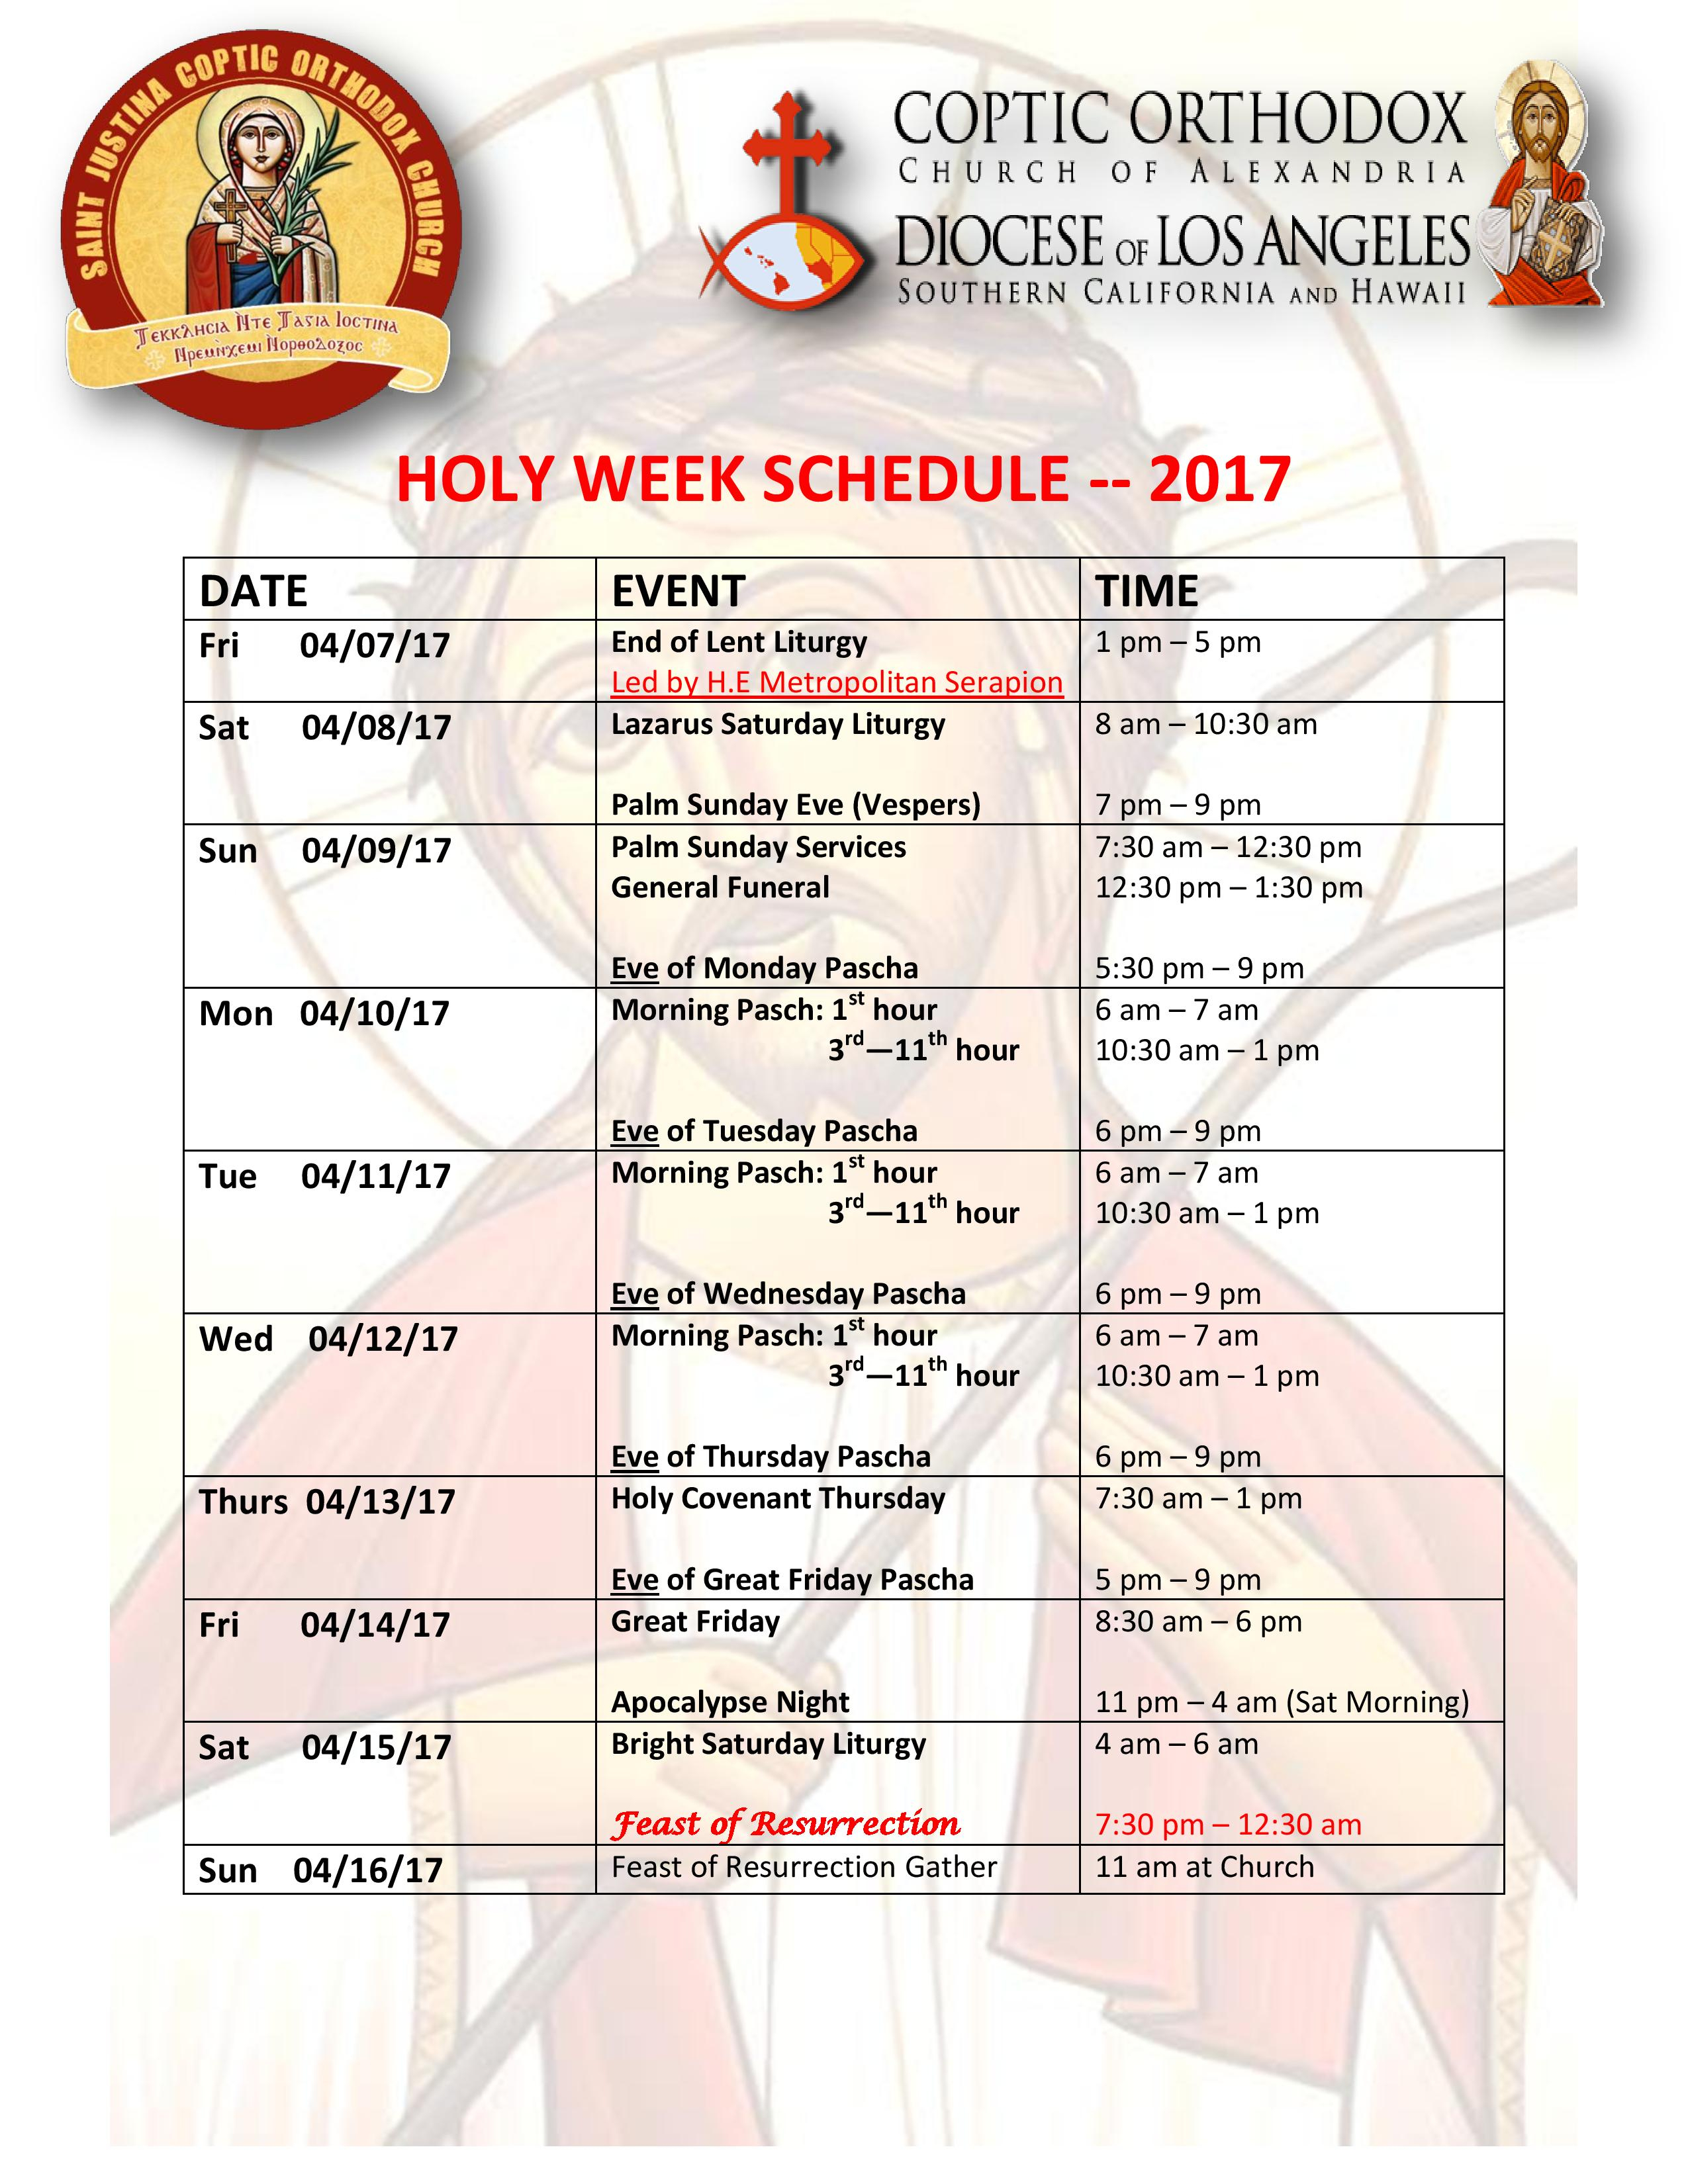 Holy Week Schedule 2017 - St Justina Coptic Orthodox Church